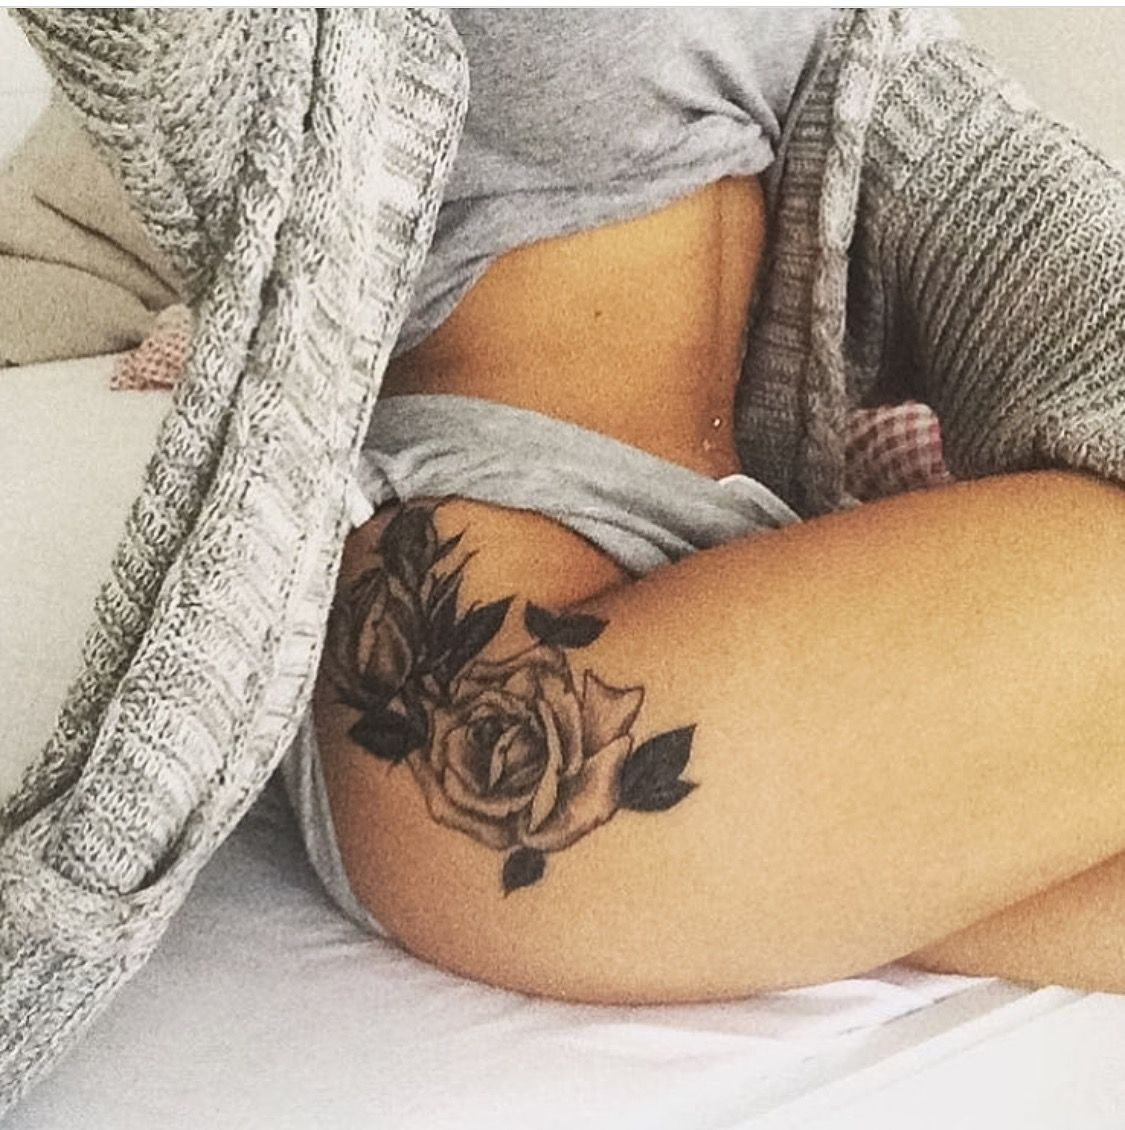 Roses thigh tattoo                                                                                                                                                                                 More